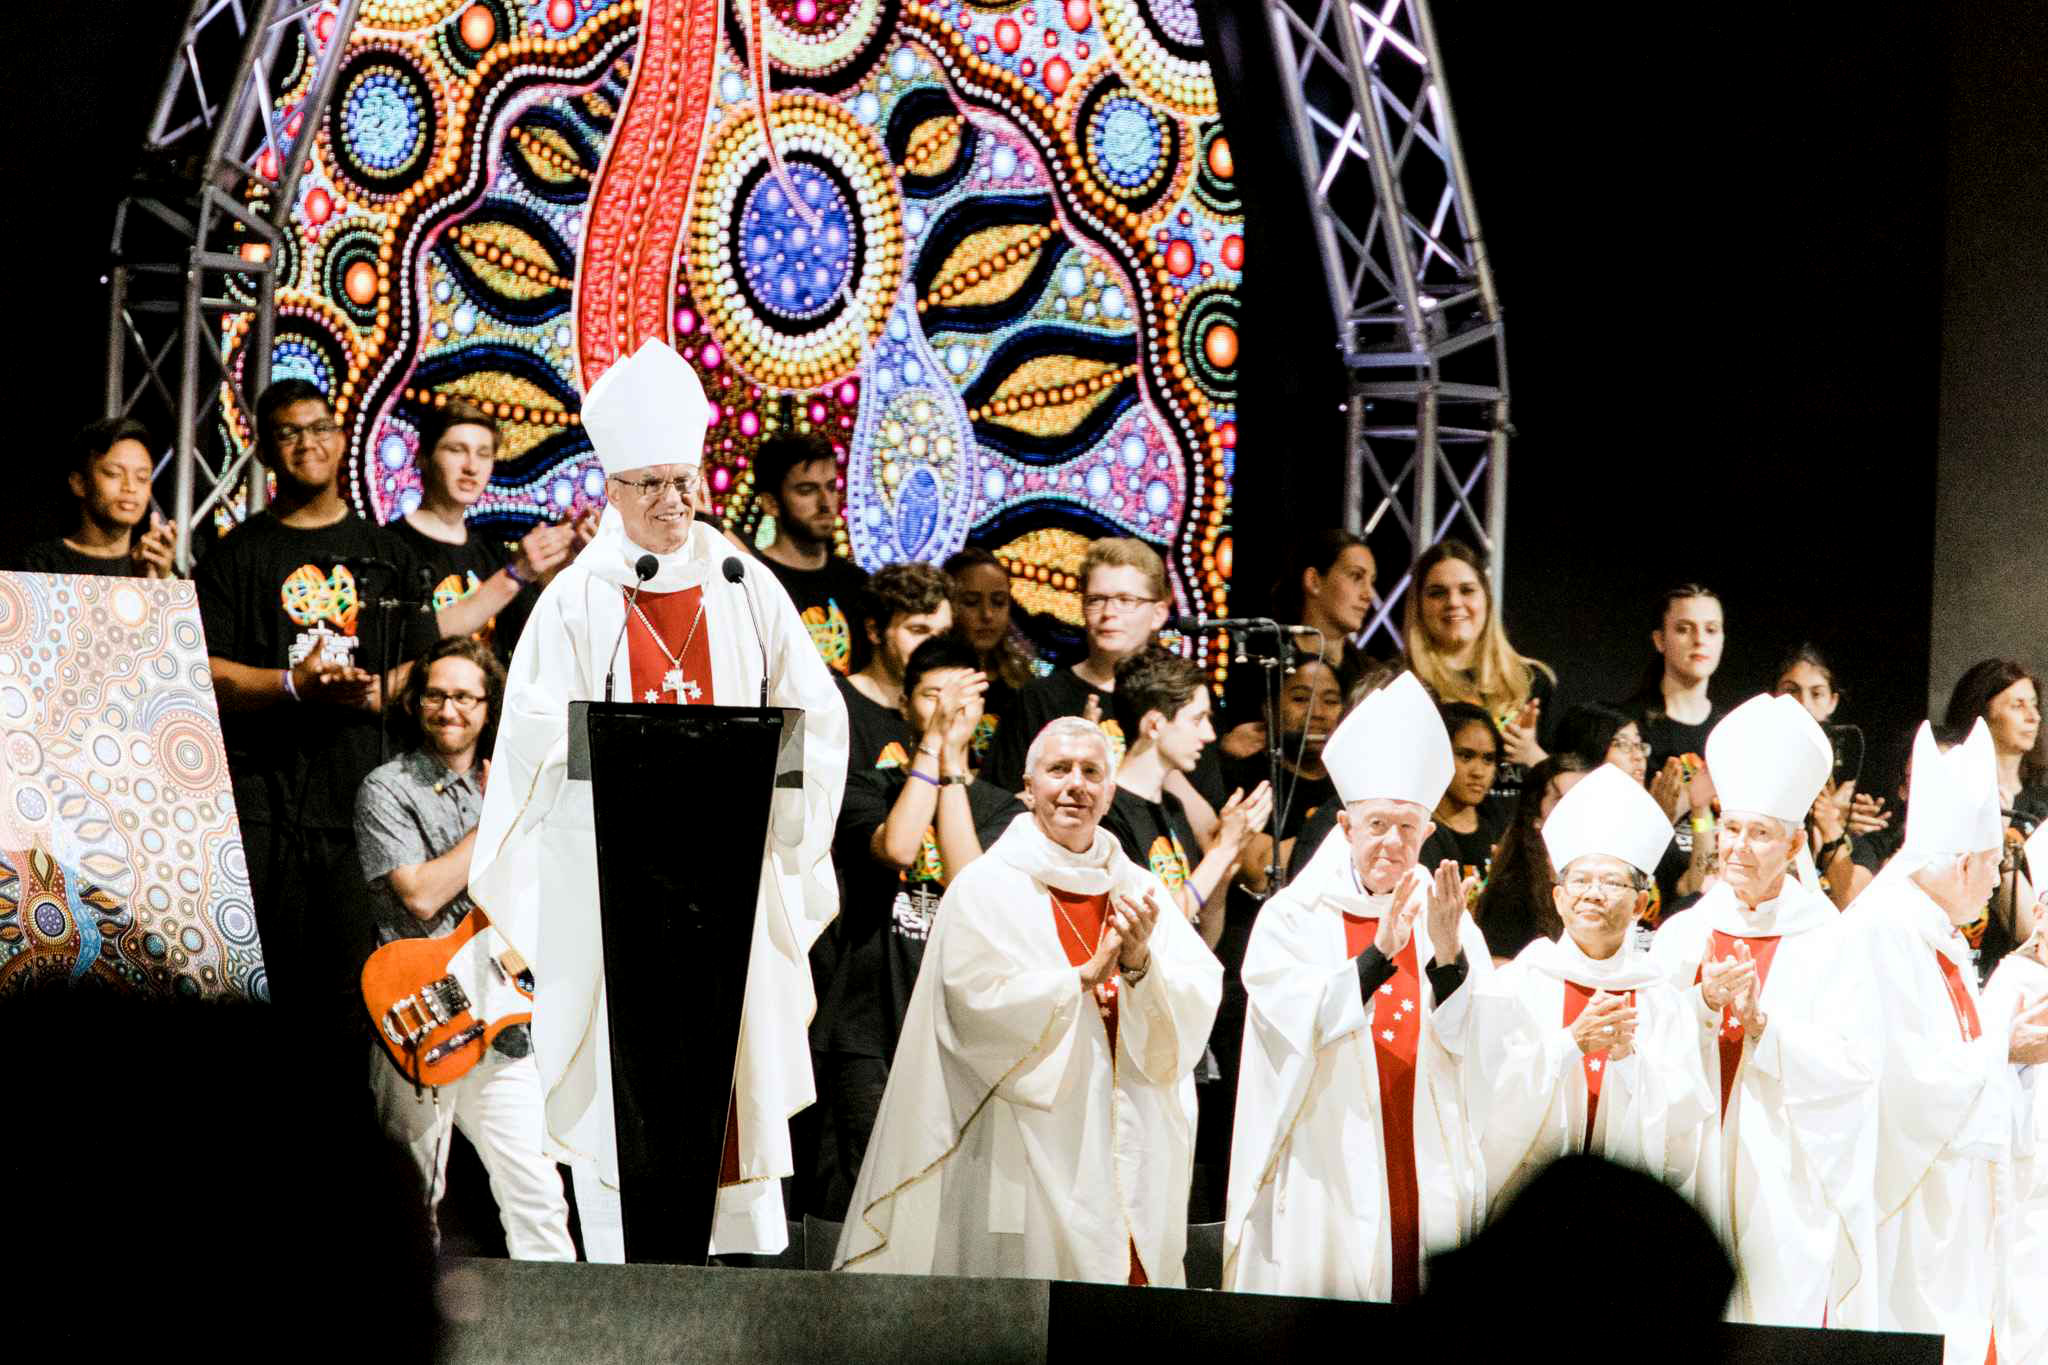 Archbishop Timothy Costelloe invites youth to attend the 2019 ACYF during the final Mass of ACYF 2017. The countdown is on with less than 150 days until doors open on the fourth Australian Catholic Youth Festival 2019 (ACYF19) to be held in Perth, 8 to 10 December. Photo: Cyron Sobrevinas.